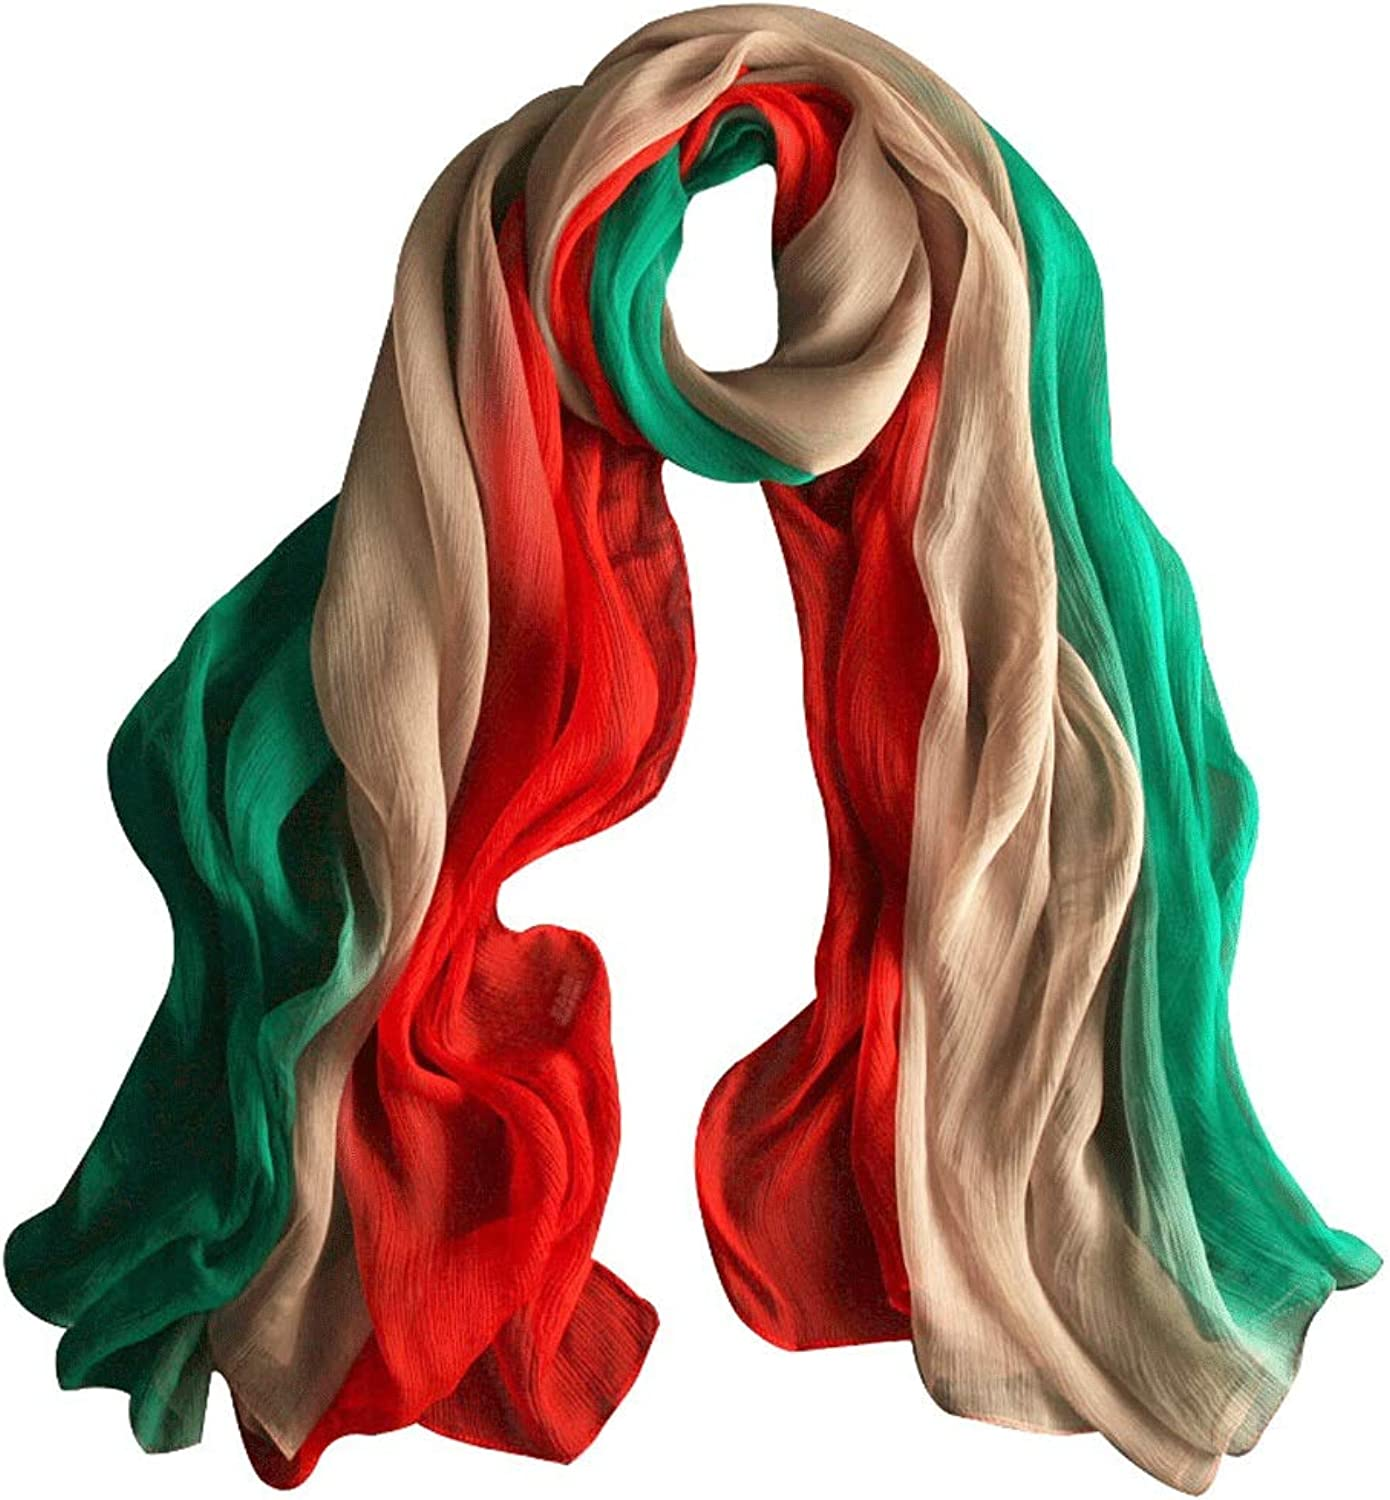 Scarves & Wraps Ladies' Scarves, sunscreens, Beach Towels Scarves & Wraps (color   Multicolord, Size   180  110cm)